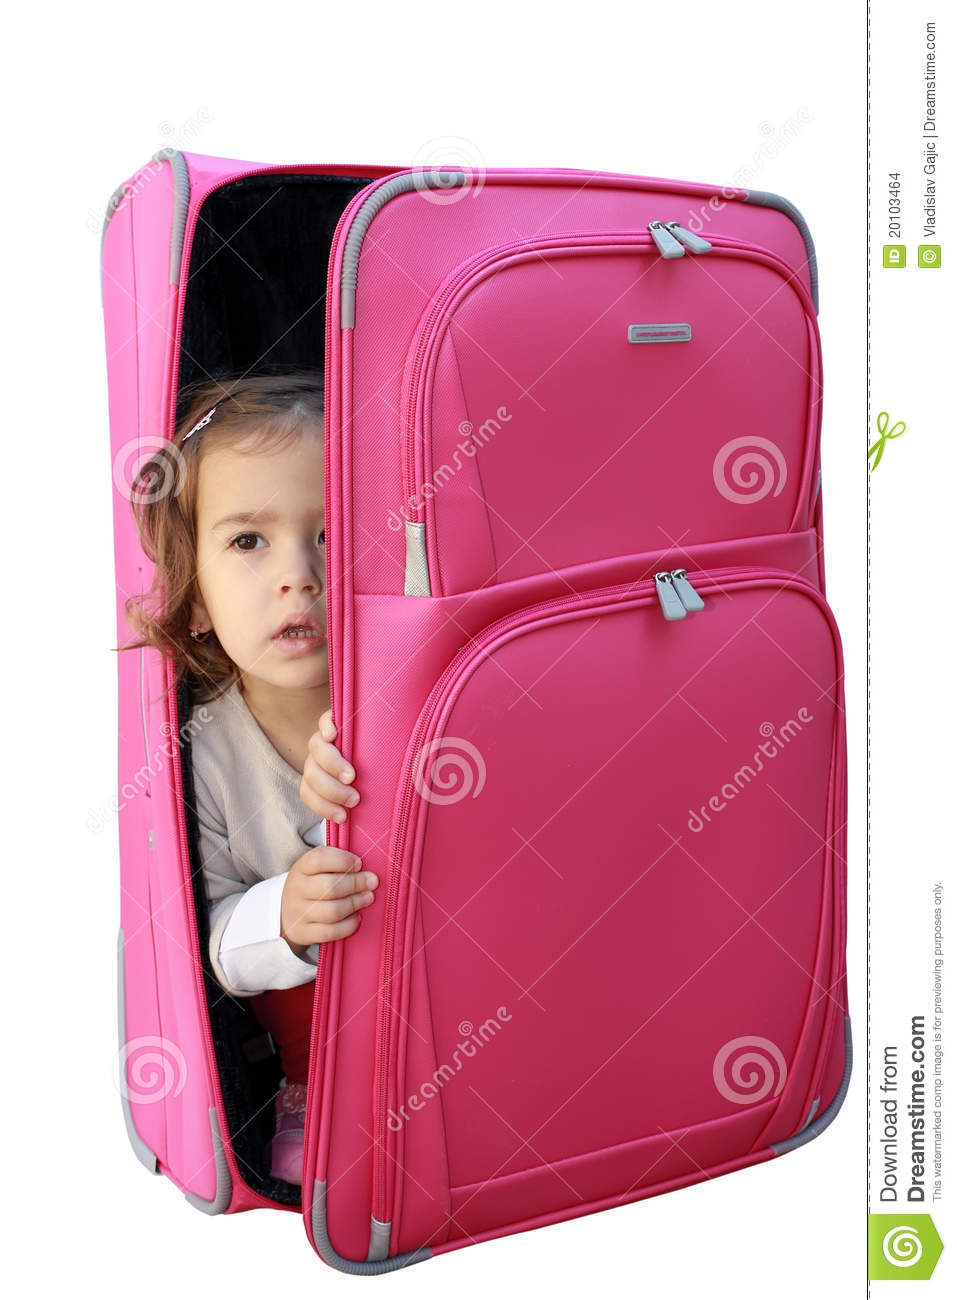 Little Girl In The Suitcase Stock Images - Image: 20103464